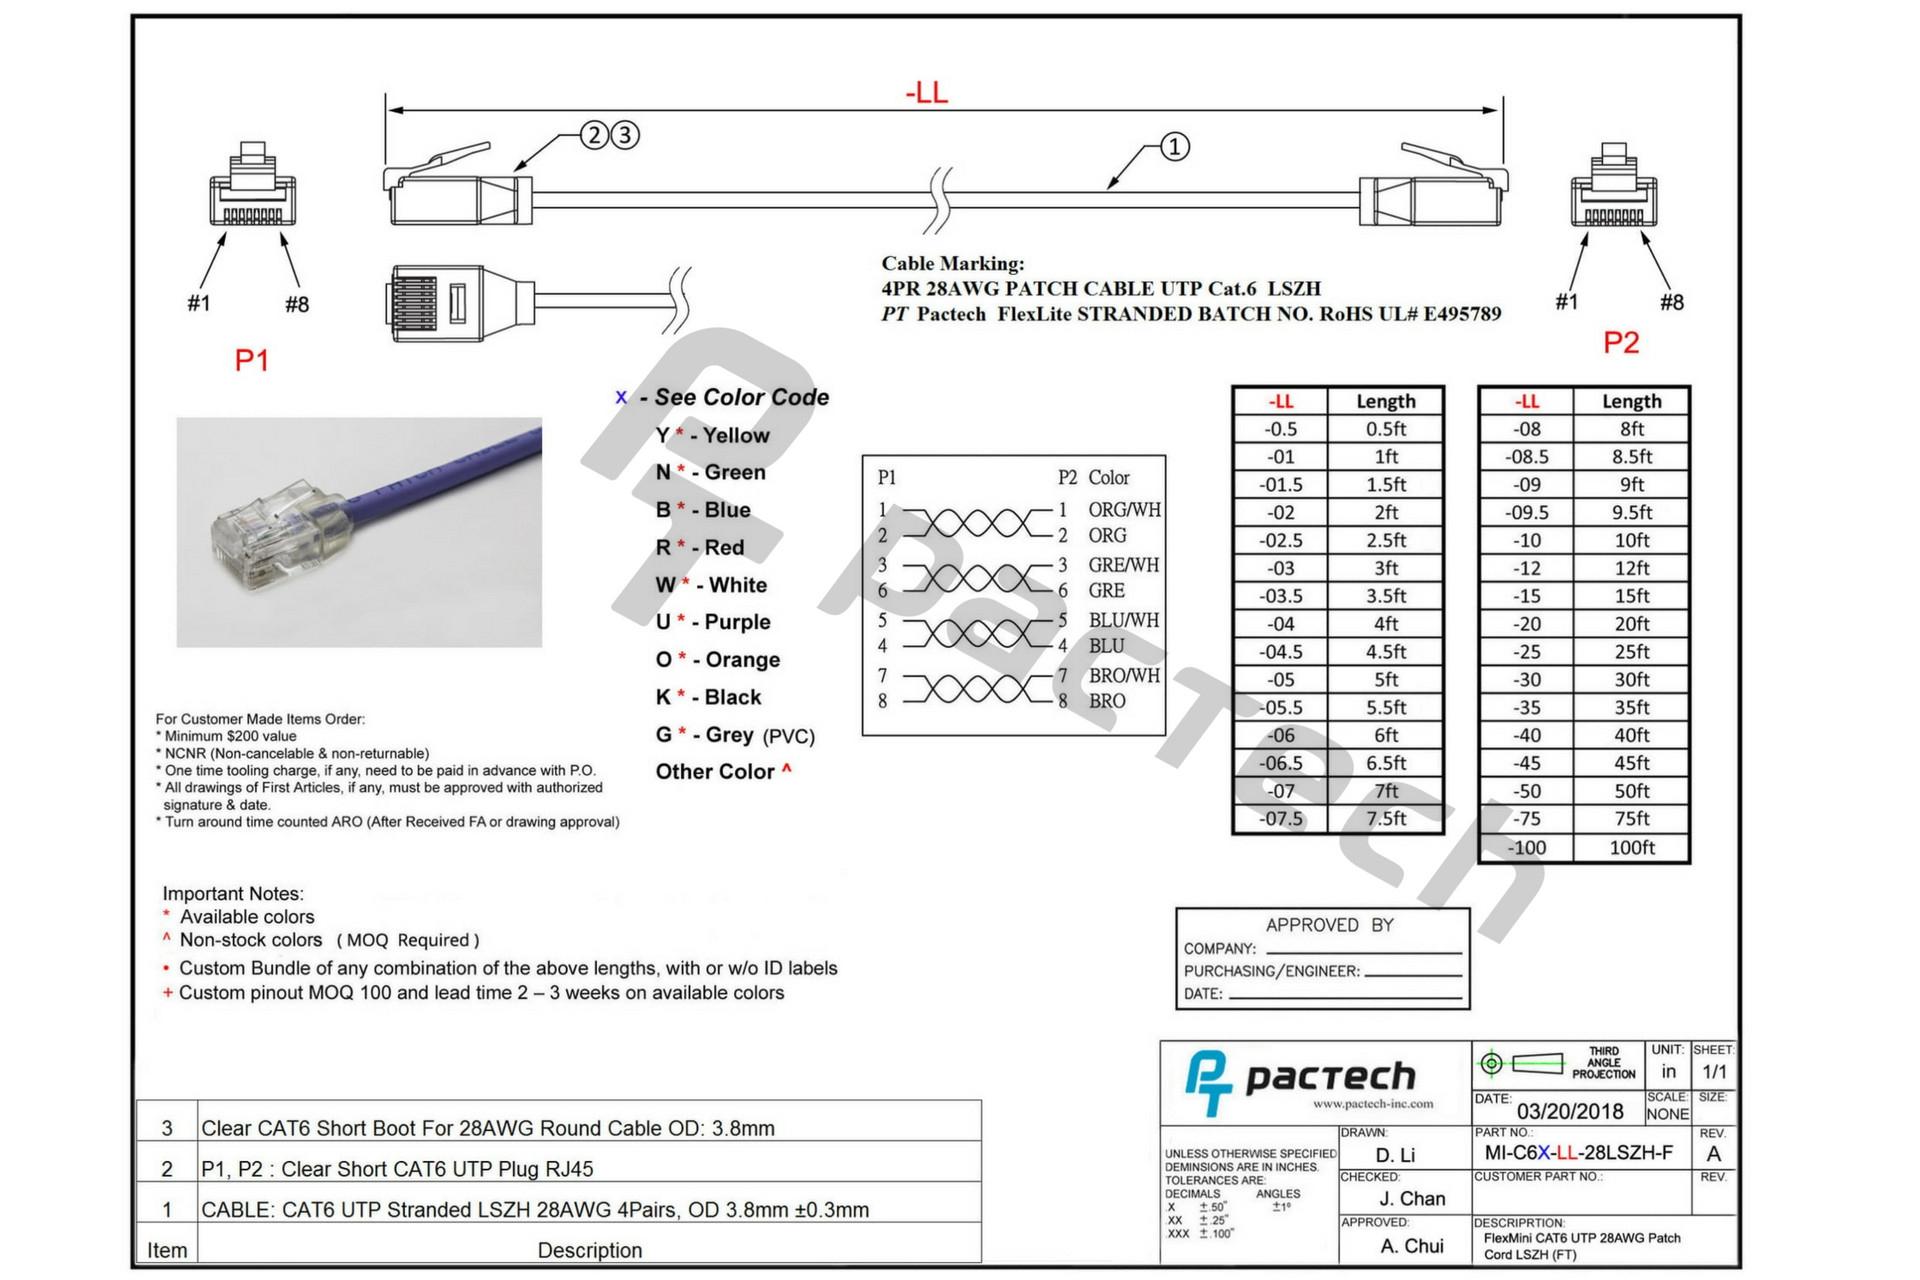 ethernet rj45 wiring diagram Collection-Ethernet Cable Wiring Diagram Australia Best Contemporary Rj 45 10-f